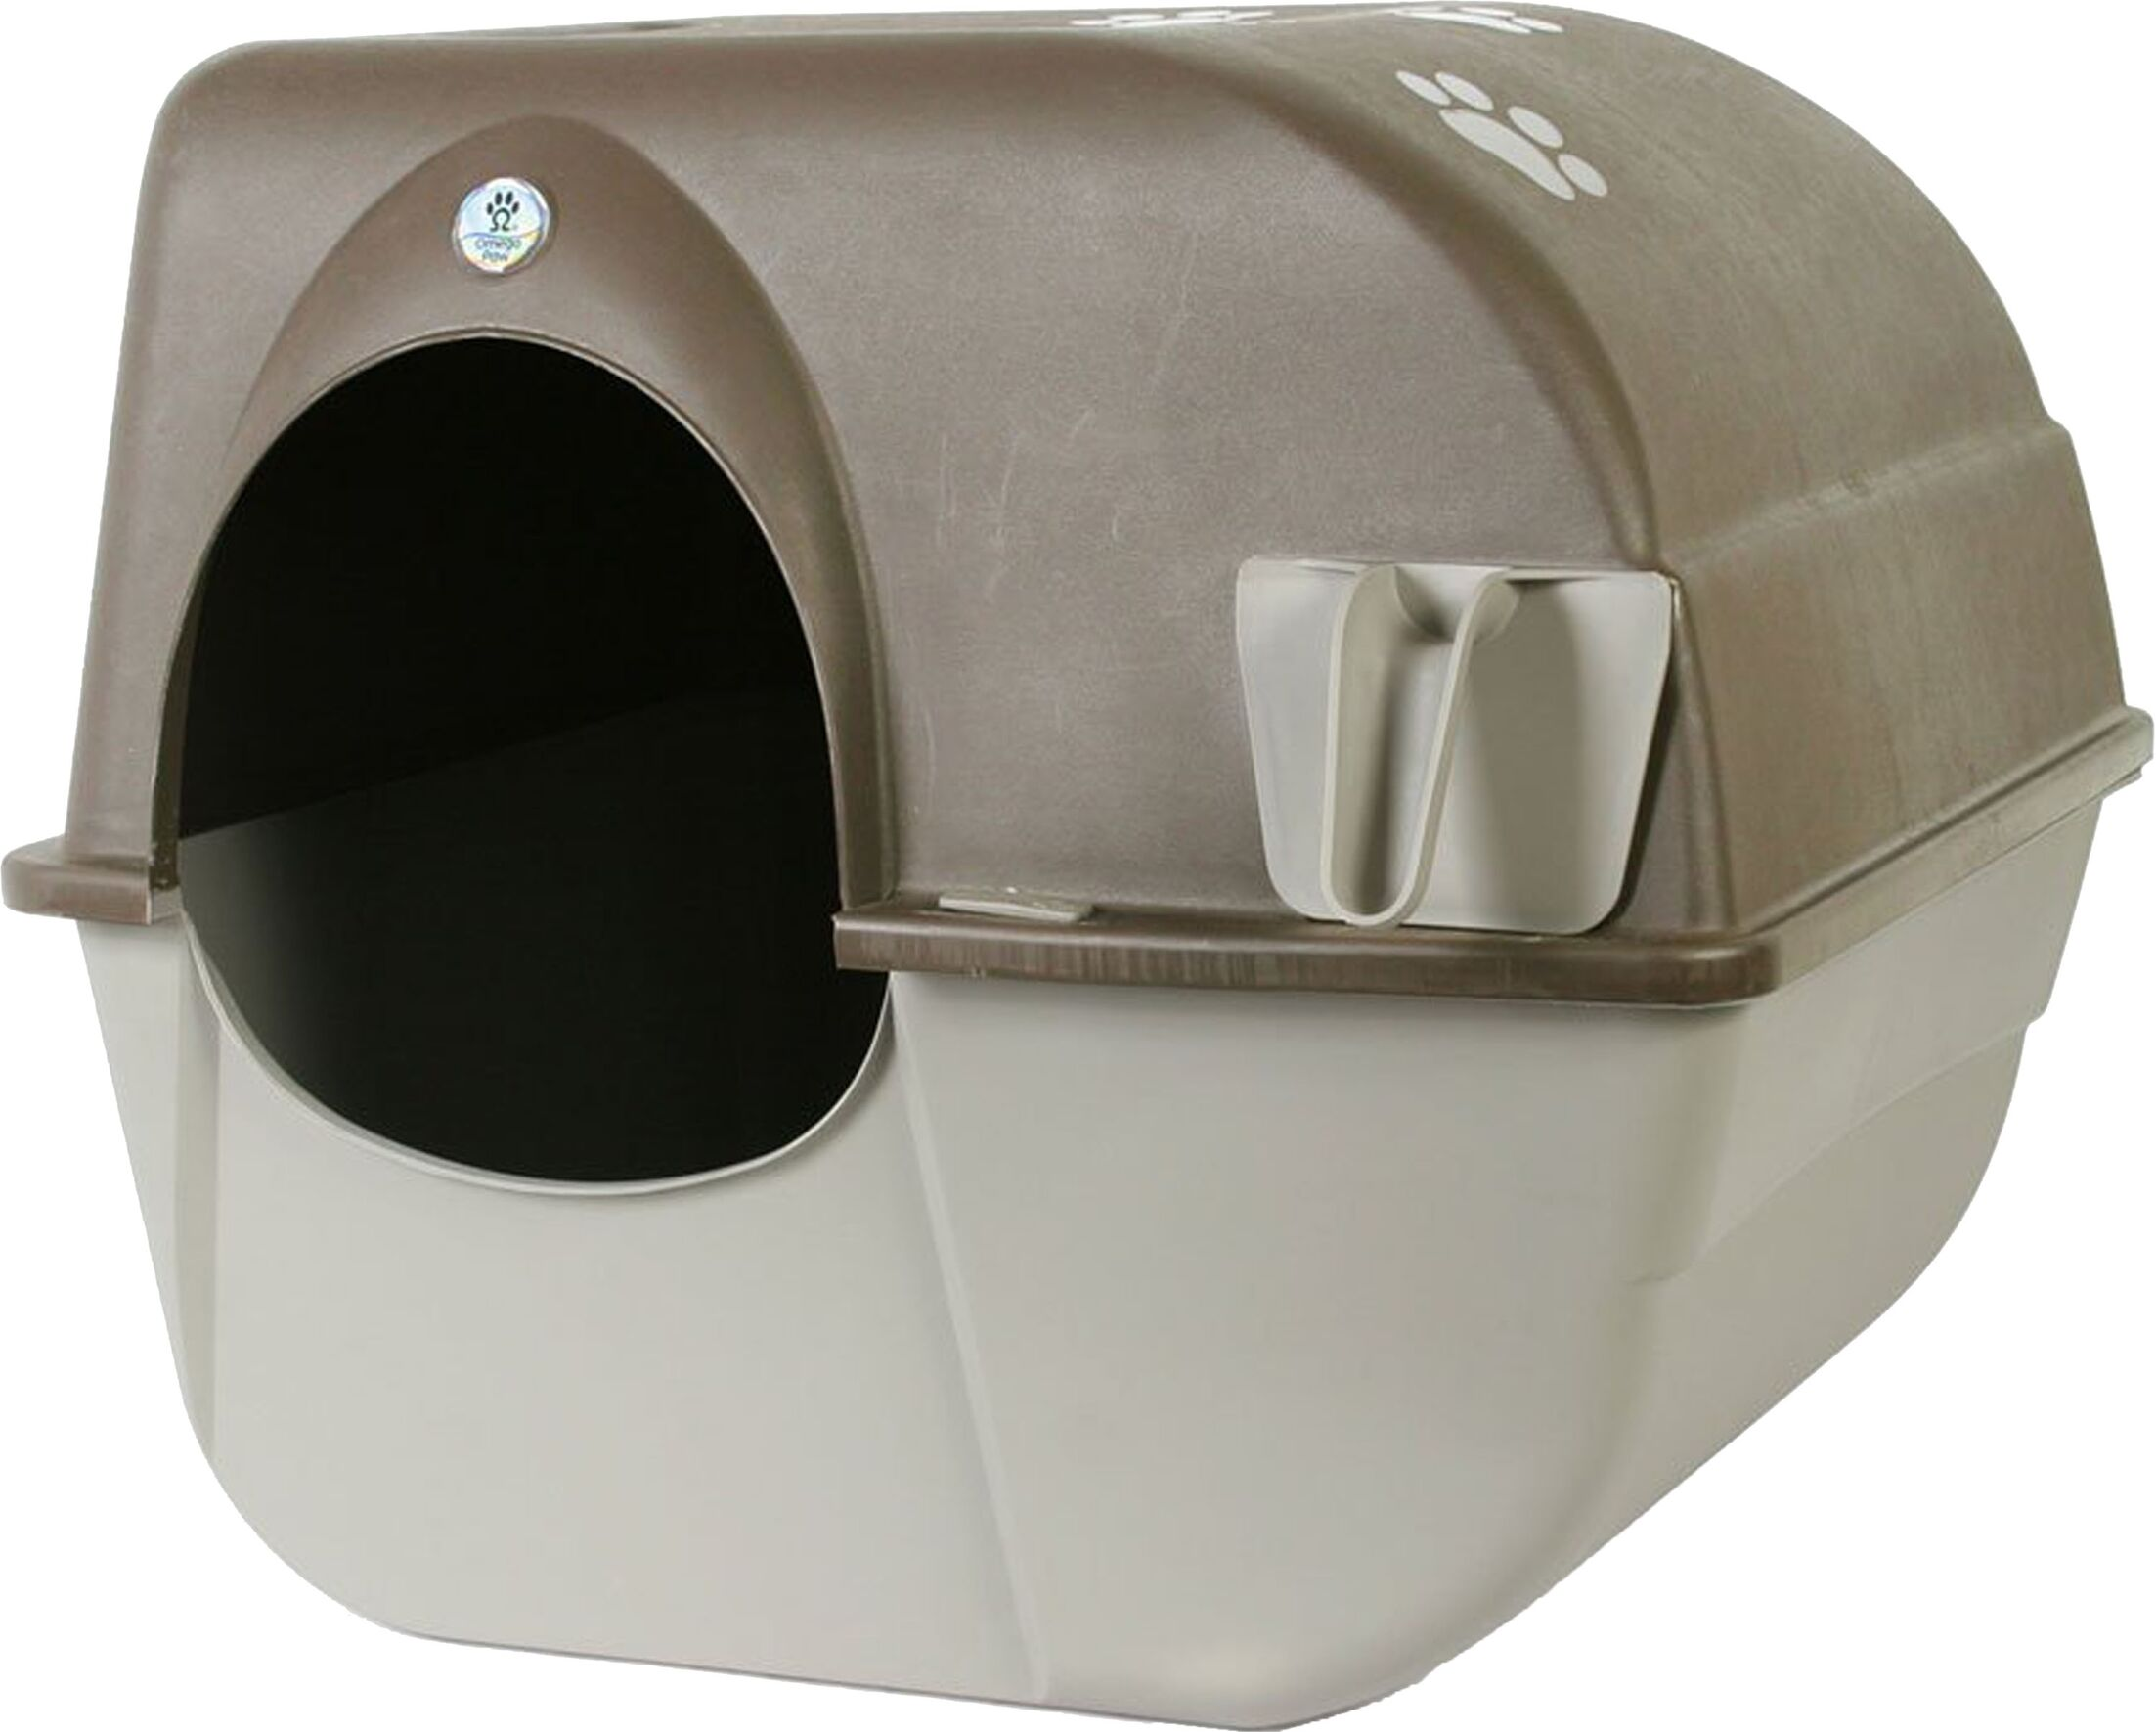 Self Cleaning Litter Box Size: Large